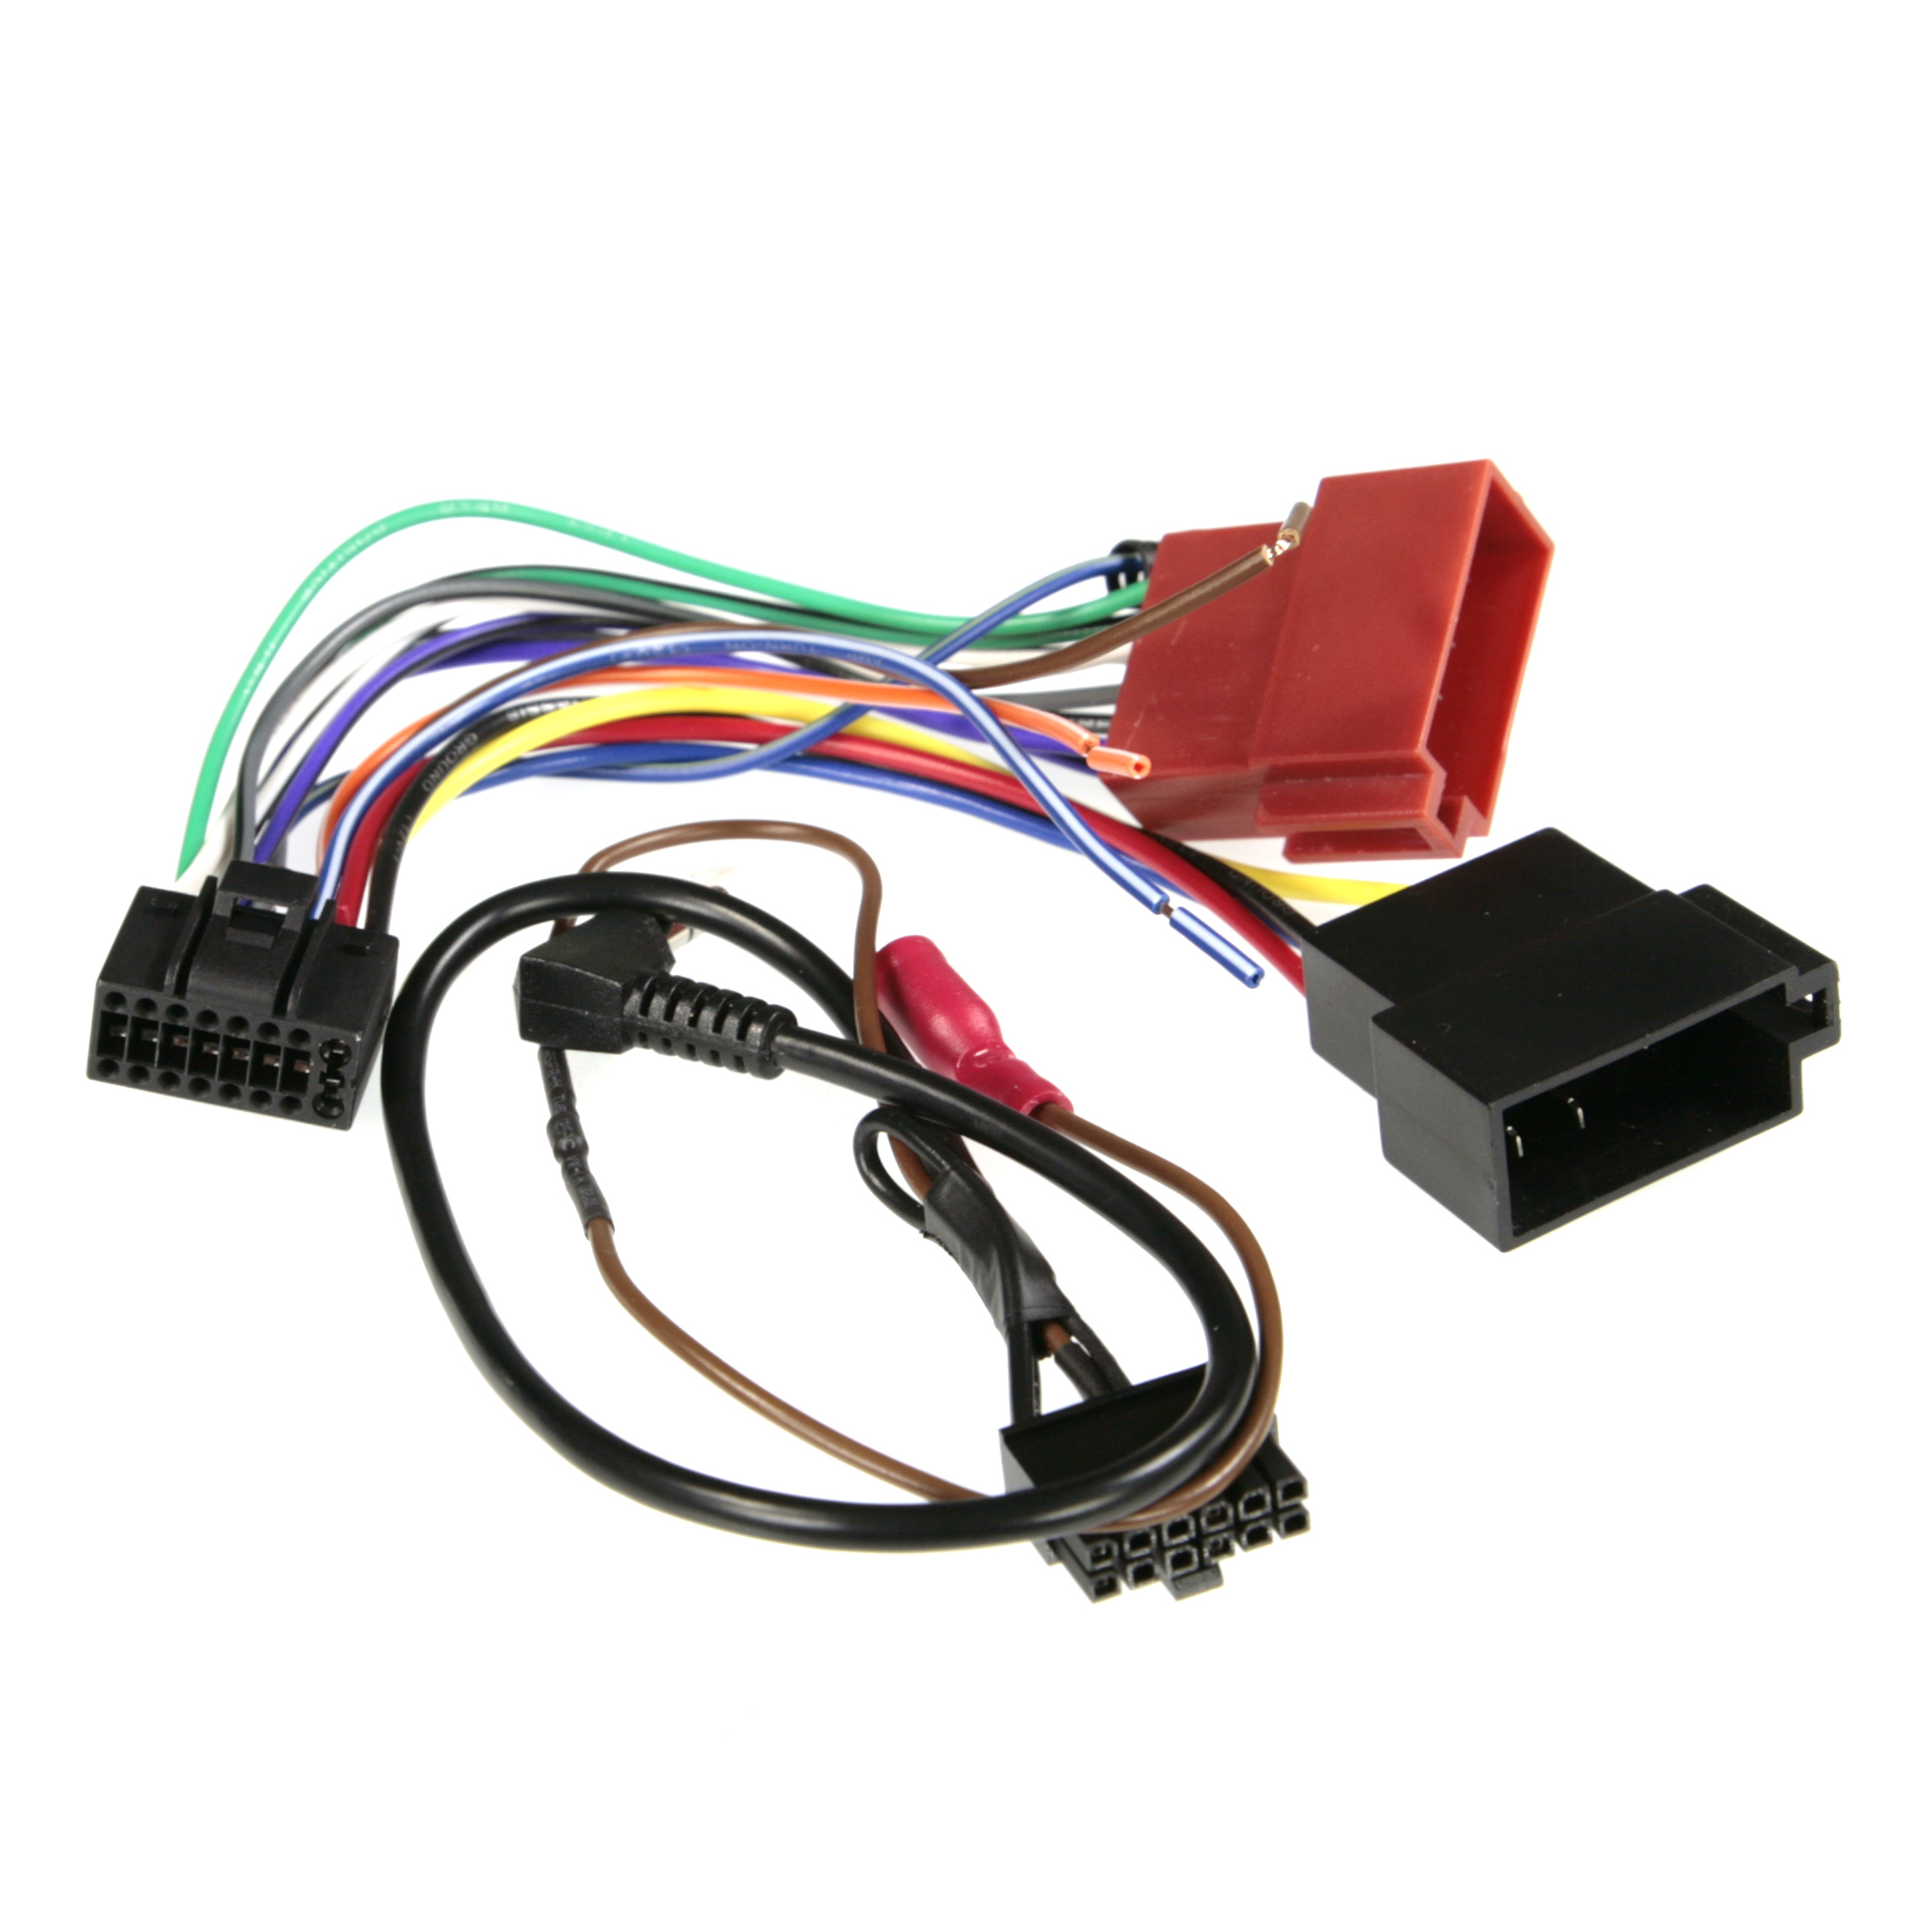 Aerpro First Choice Jvc 16 Pin Wiring Harness